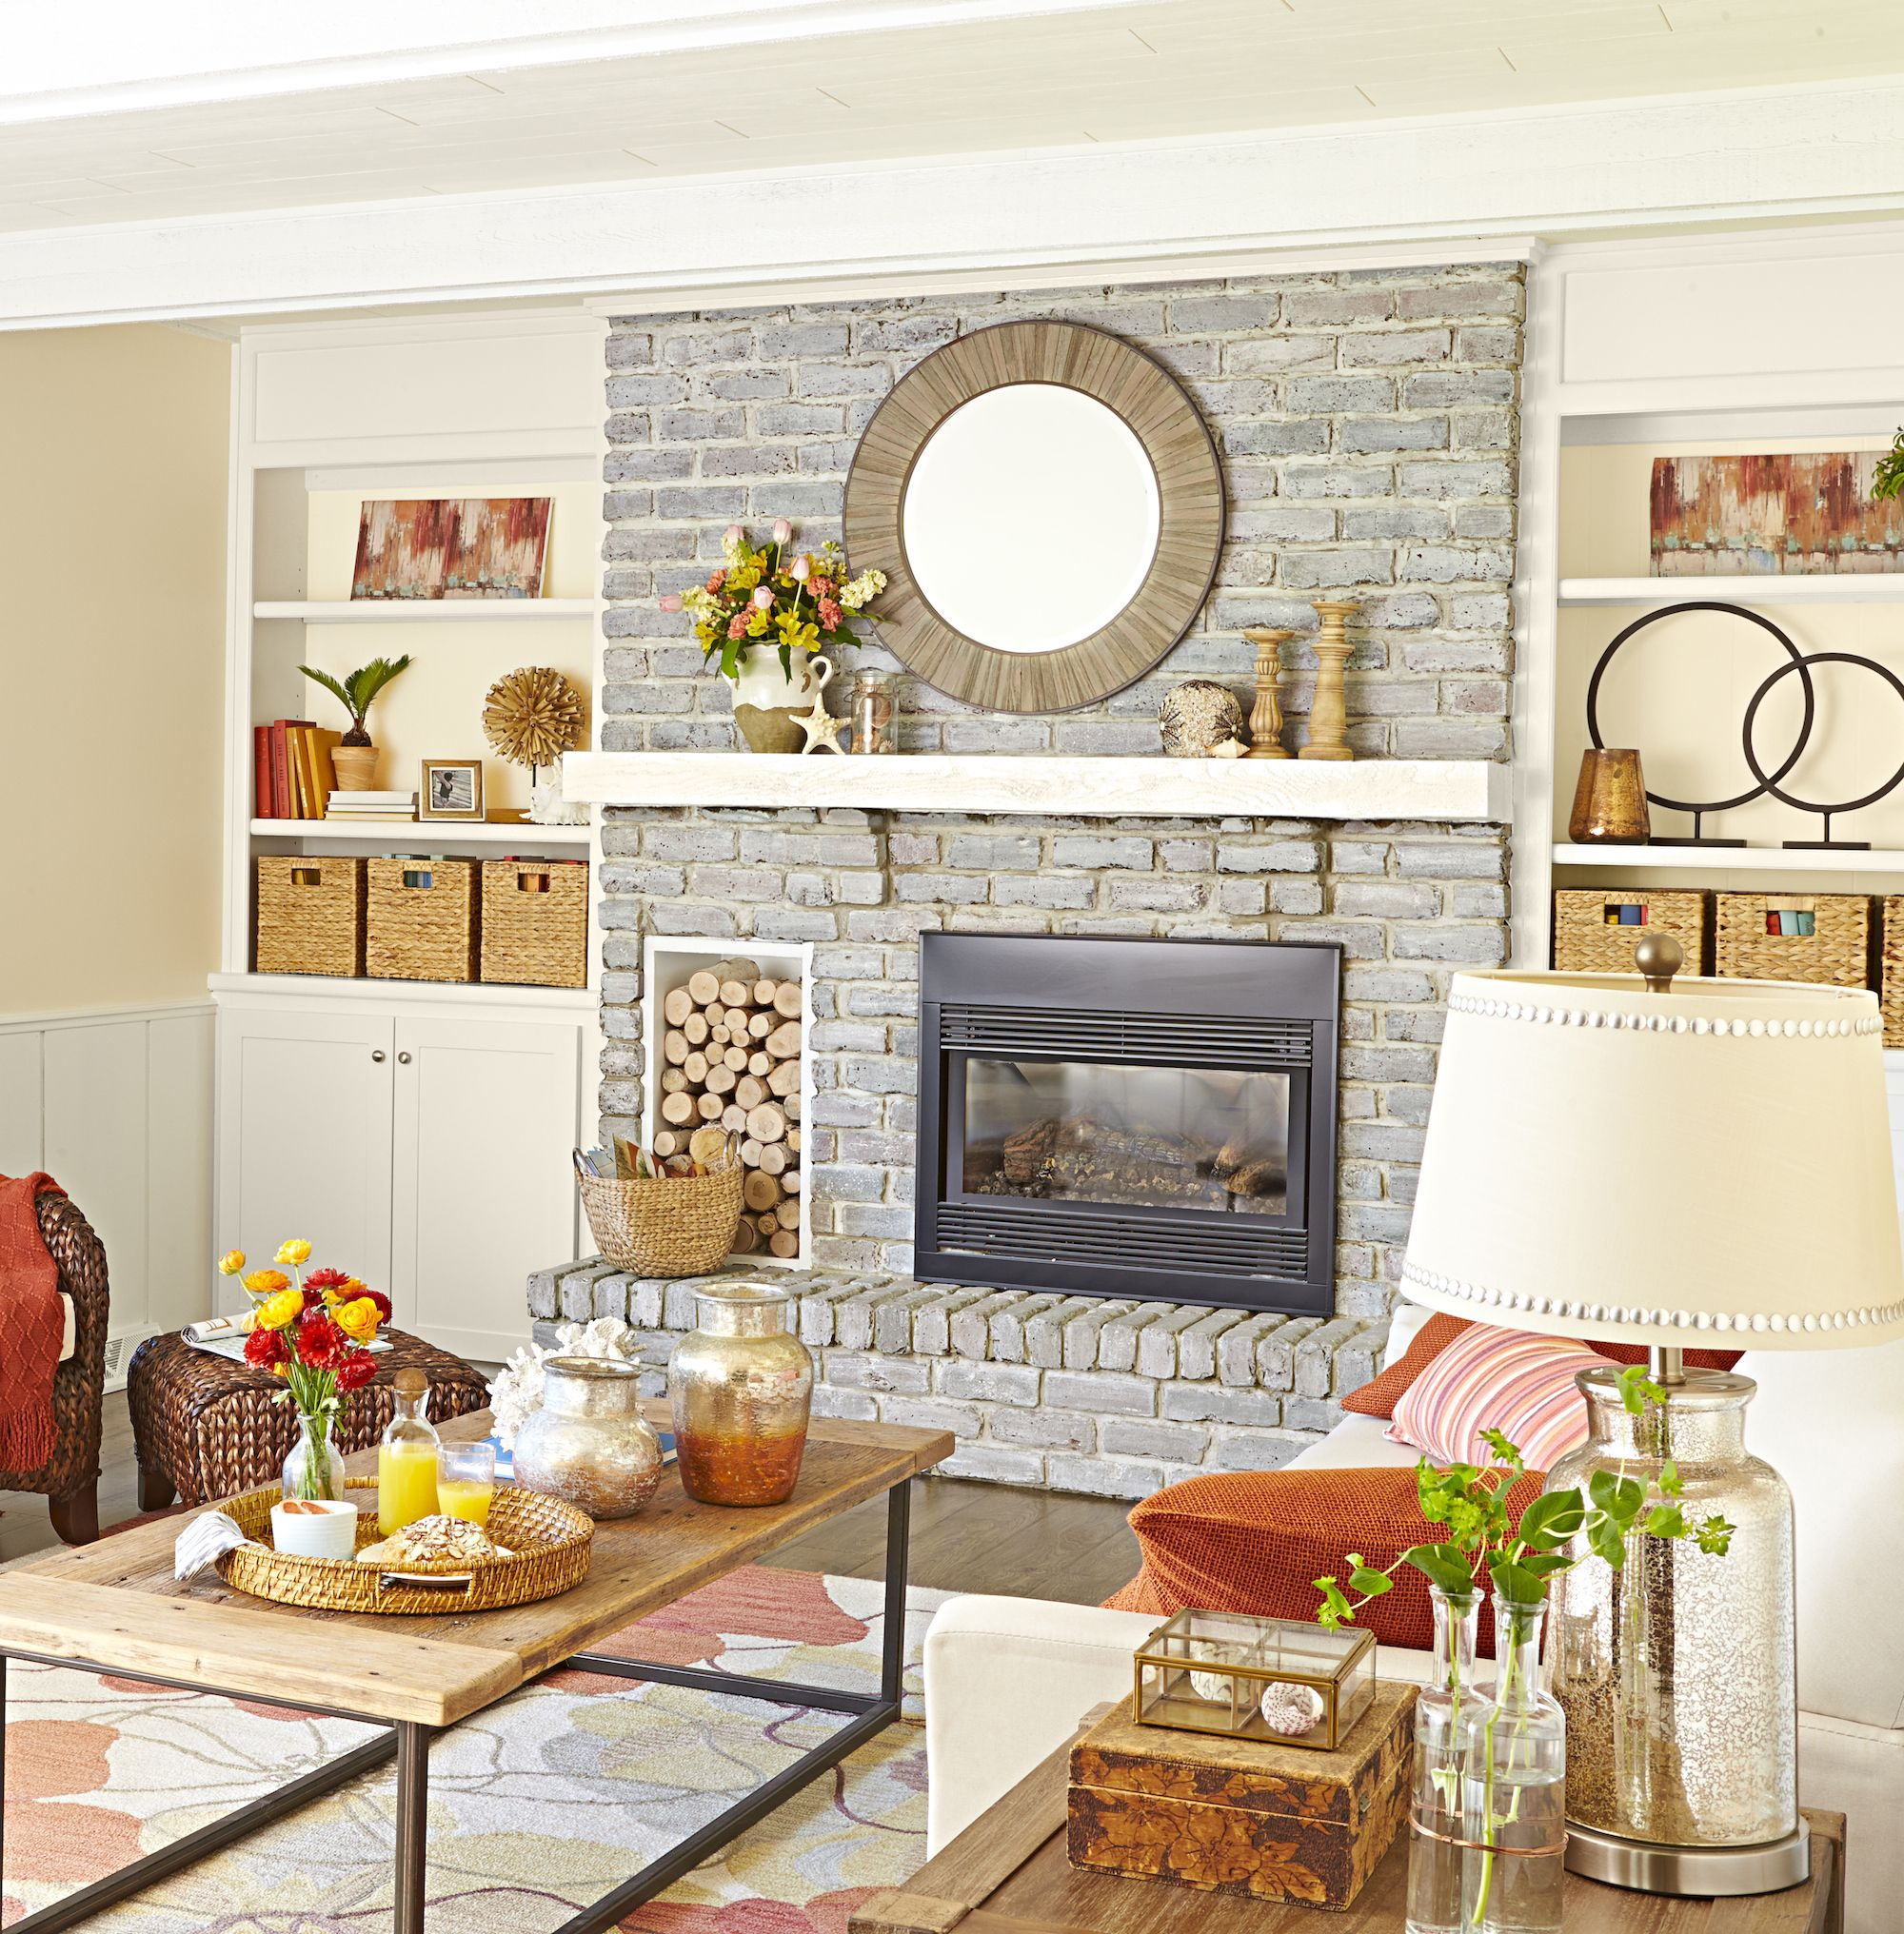 Bring your home design dreams to life with the help of Design with ...